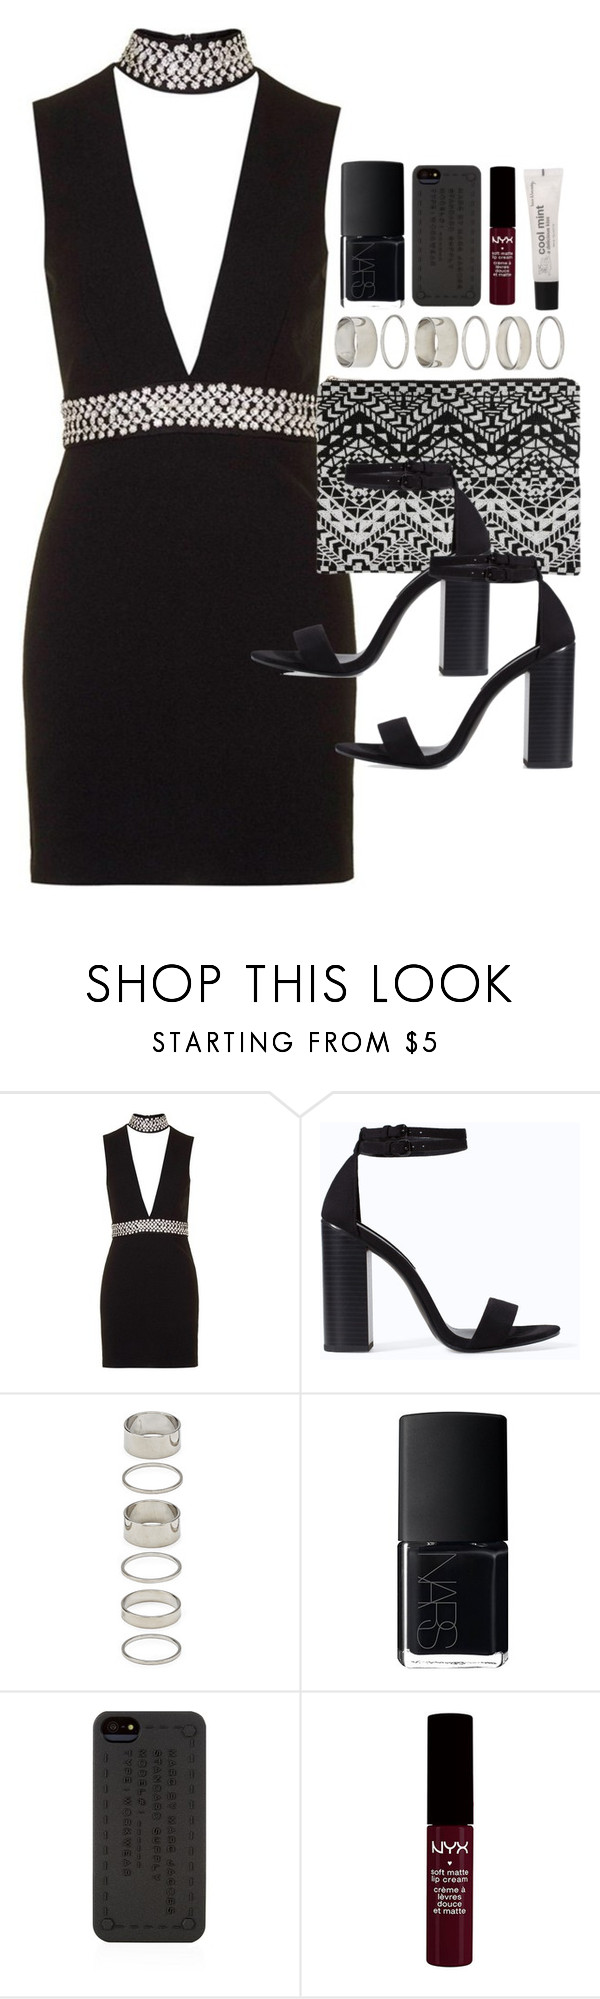 """""""Outfit for prom"""" by ferned ❤ liked on Polyvore featuring Topshop, Zara, Forever 21, NARS Cosmetics and Marc by Marc Jacobs"""